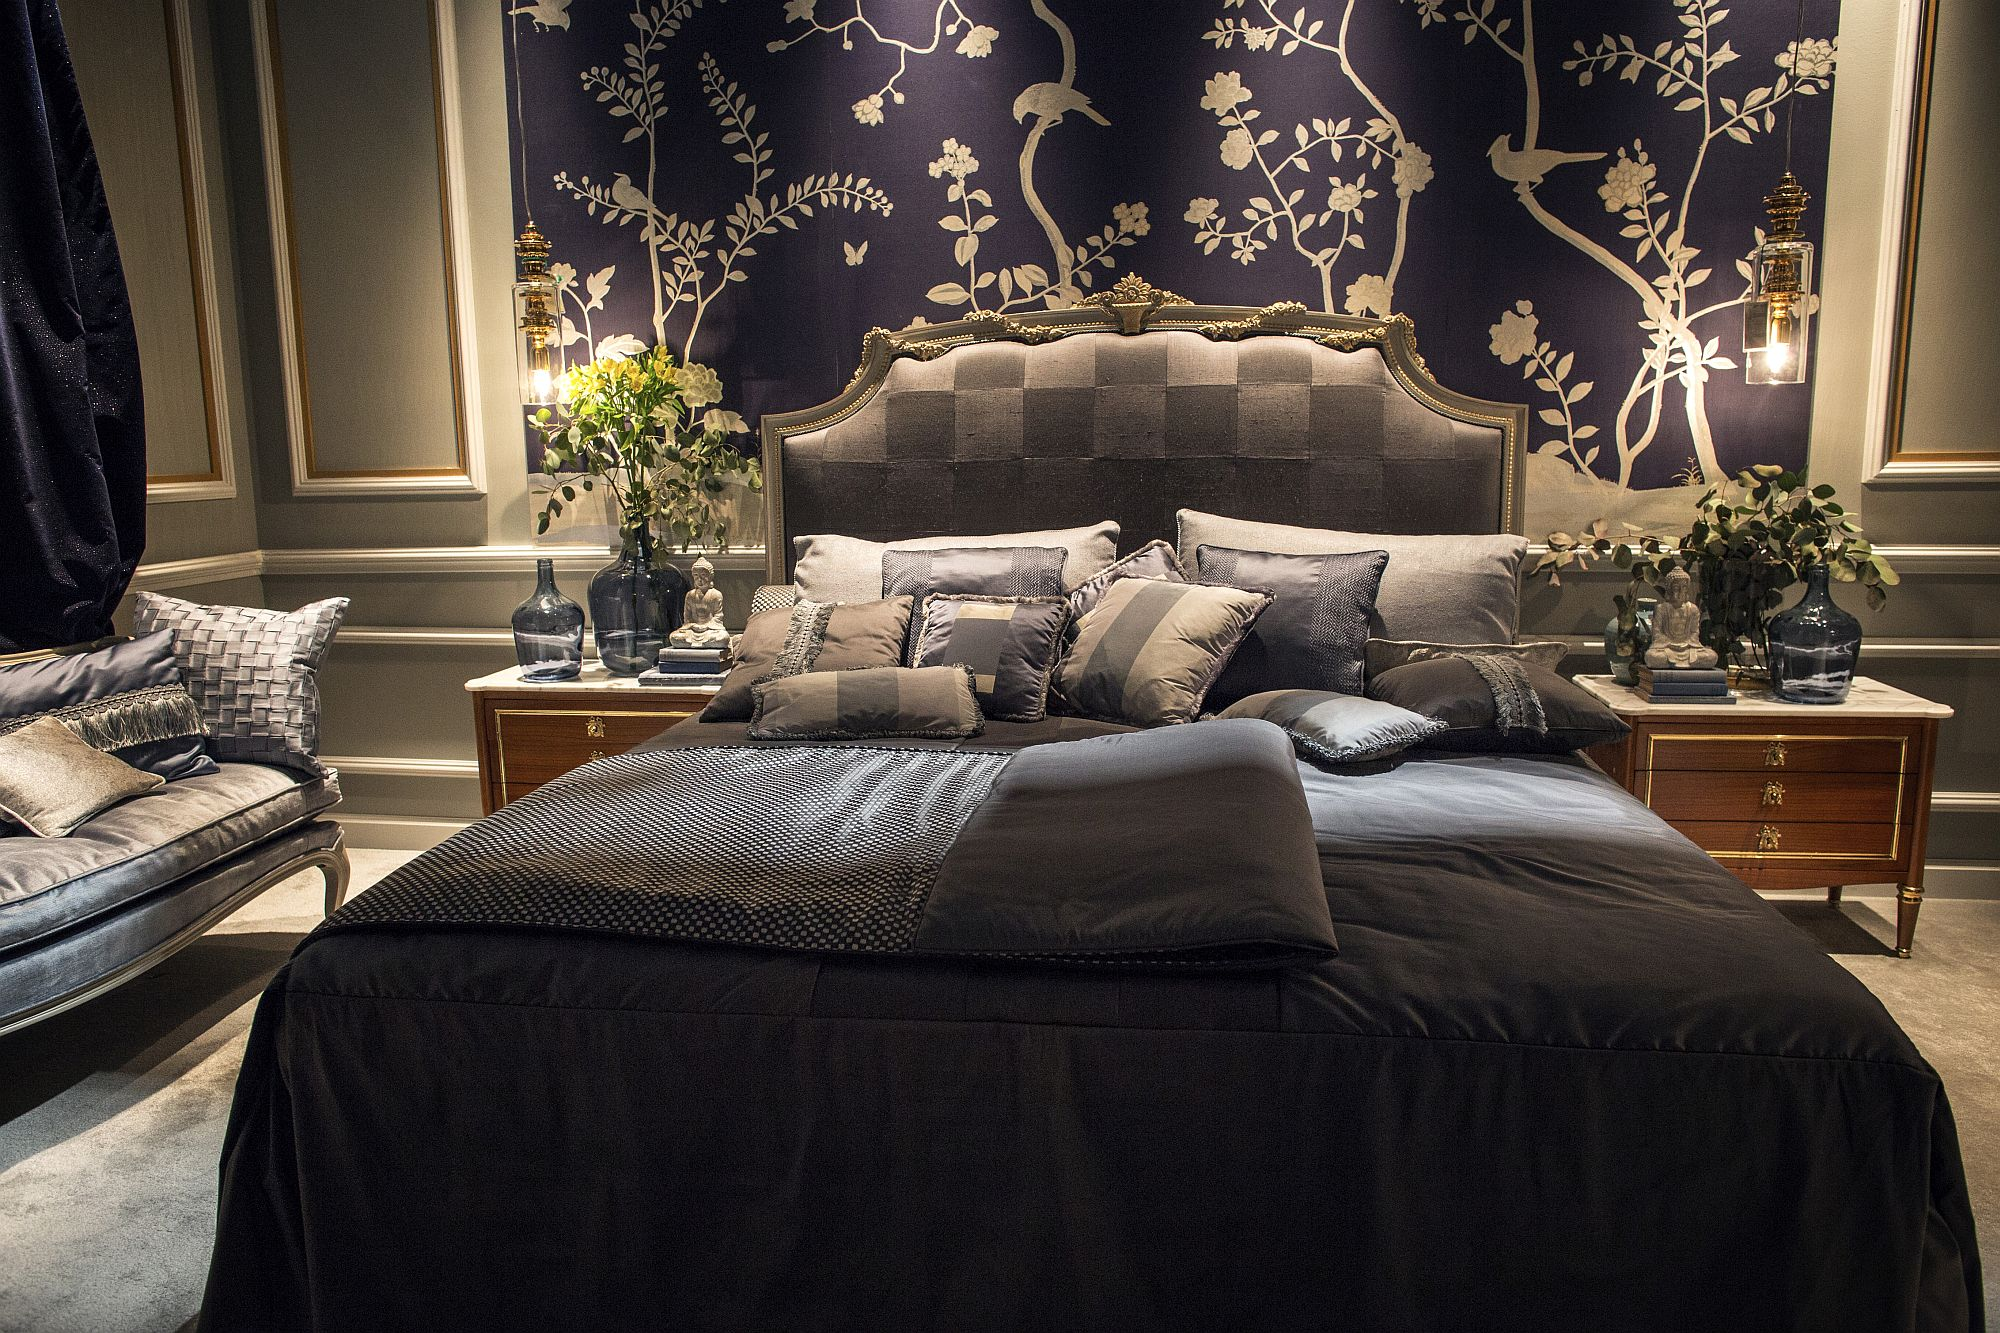 Mural-in-the-backdrop-adds-to-the-natural-vibe-of-the-opulent-bedroom